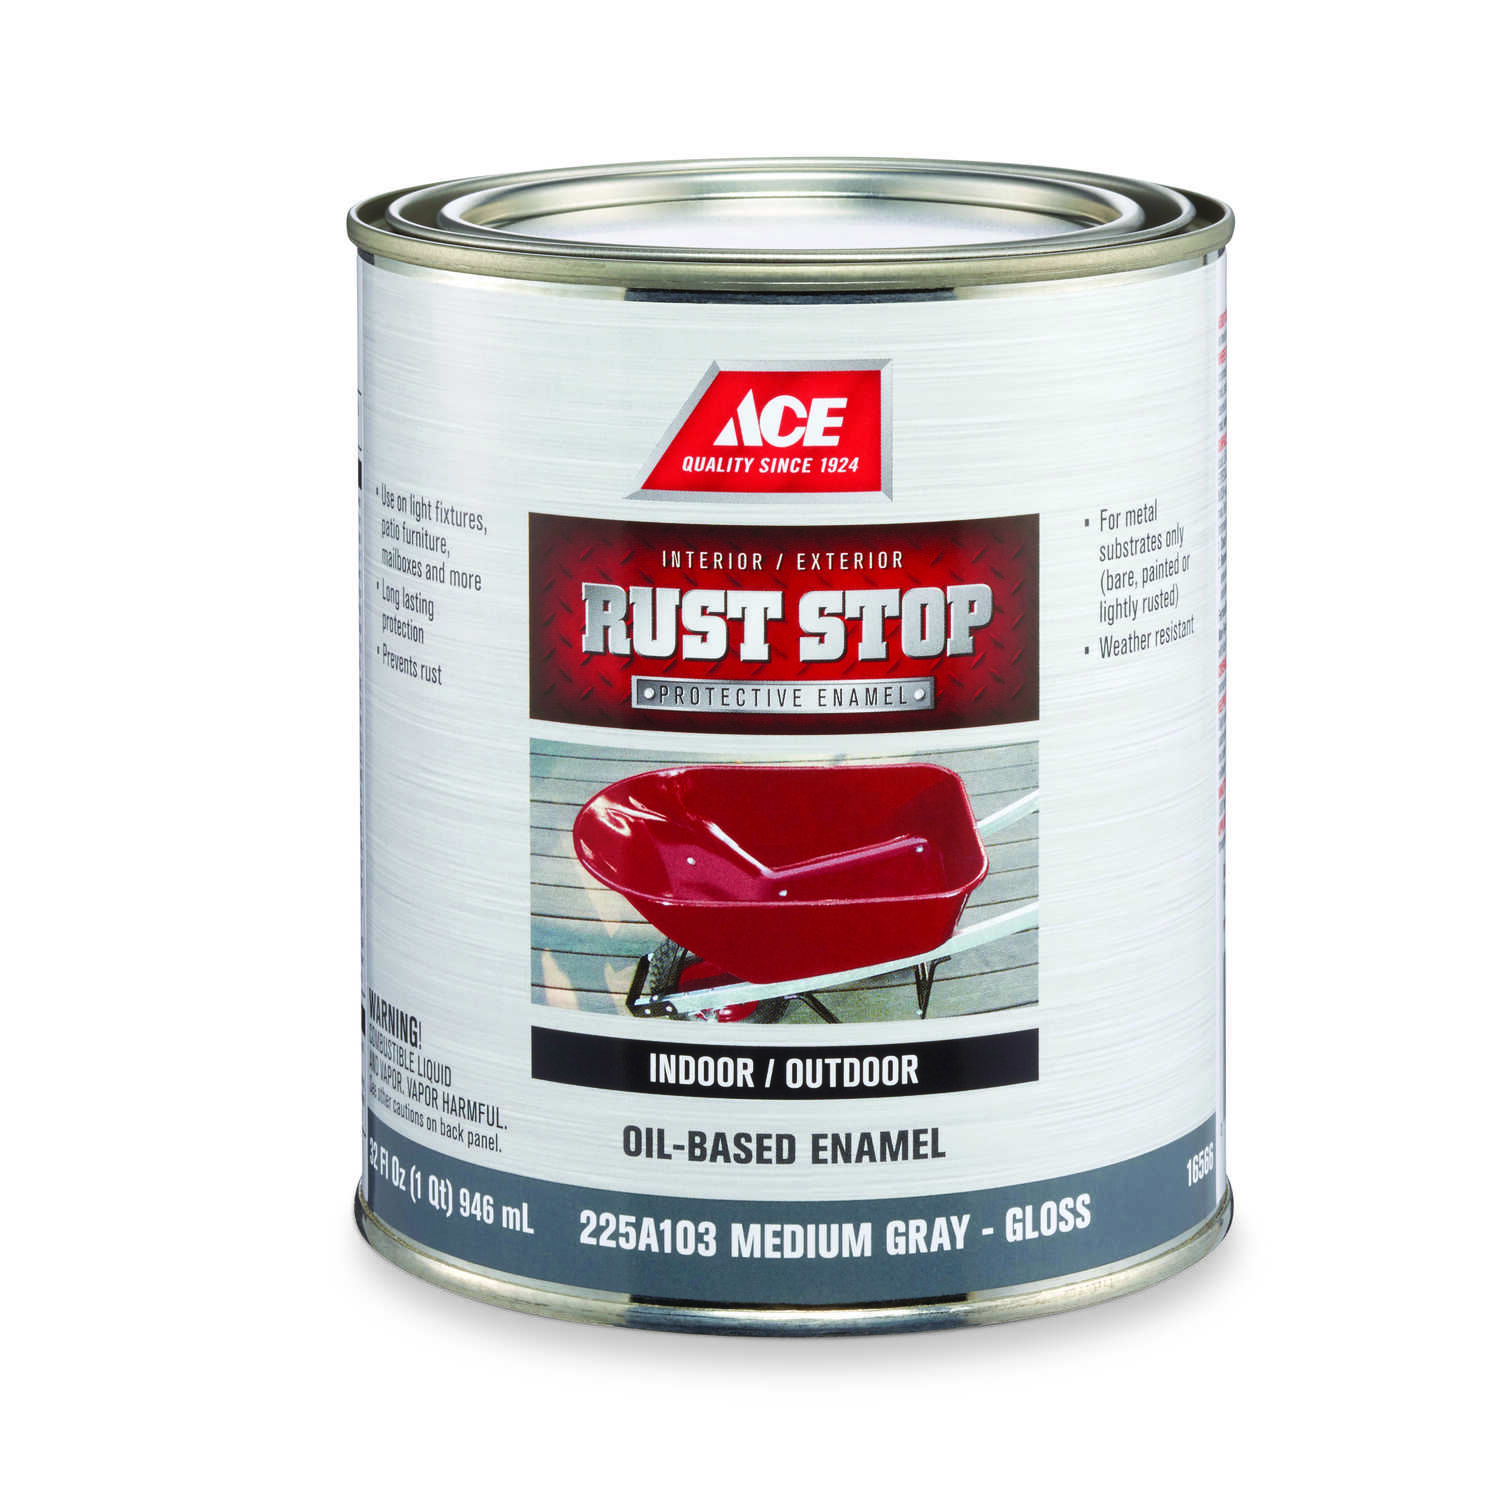 Ace  Rust Stop  Indoor and Outdoor  Gloss  Medium Gray  Rust Prevention Paint  1 qt.